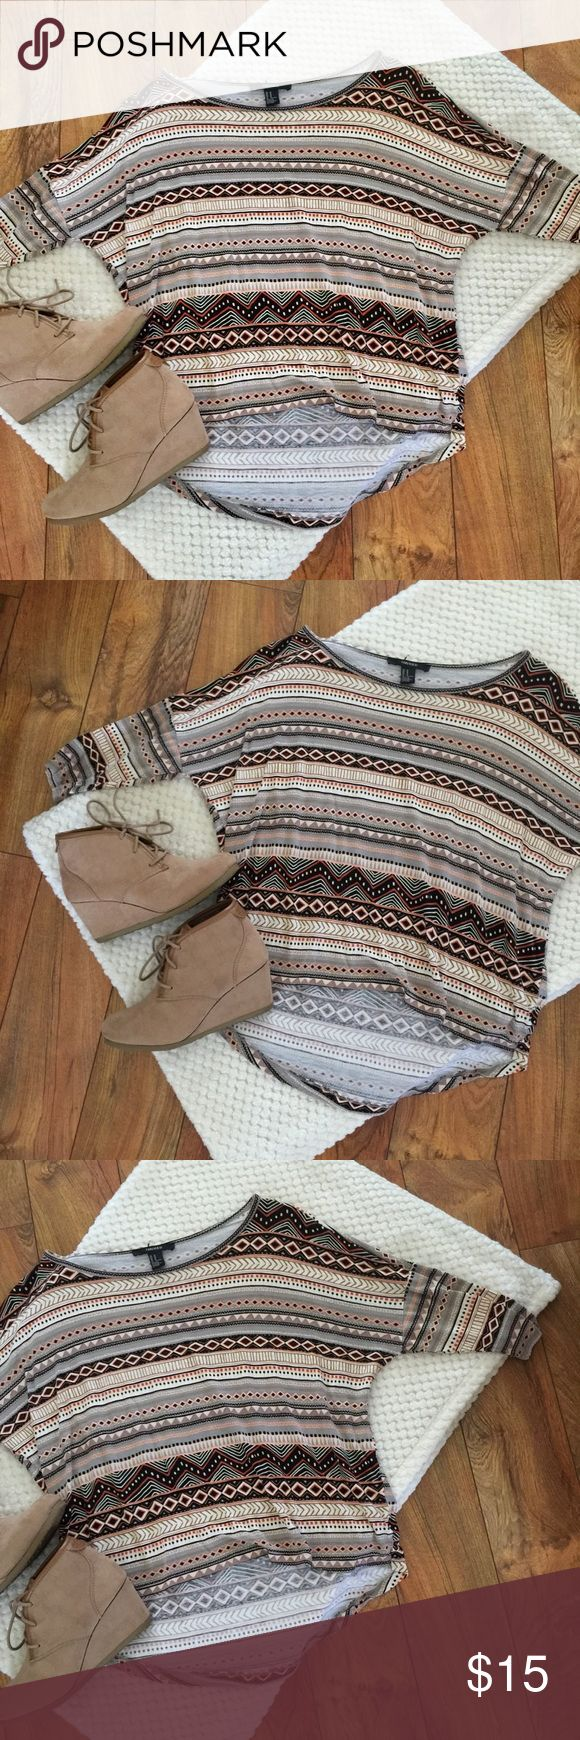 FOREVER 21 • Batwing High Low Aztec FOREVER 21 • Batwing High Low. Good used condition. Size medium. Measurements: Flat Bust 25.5 inches Length in front 20.5 inches Length in back 25.5 inches Forever 21 Tops Blouses